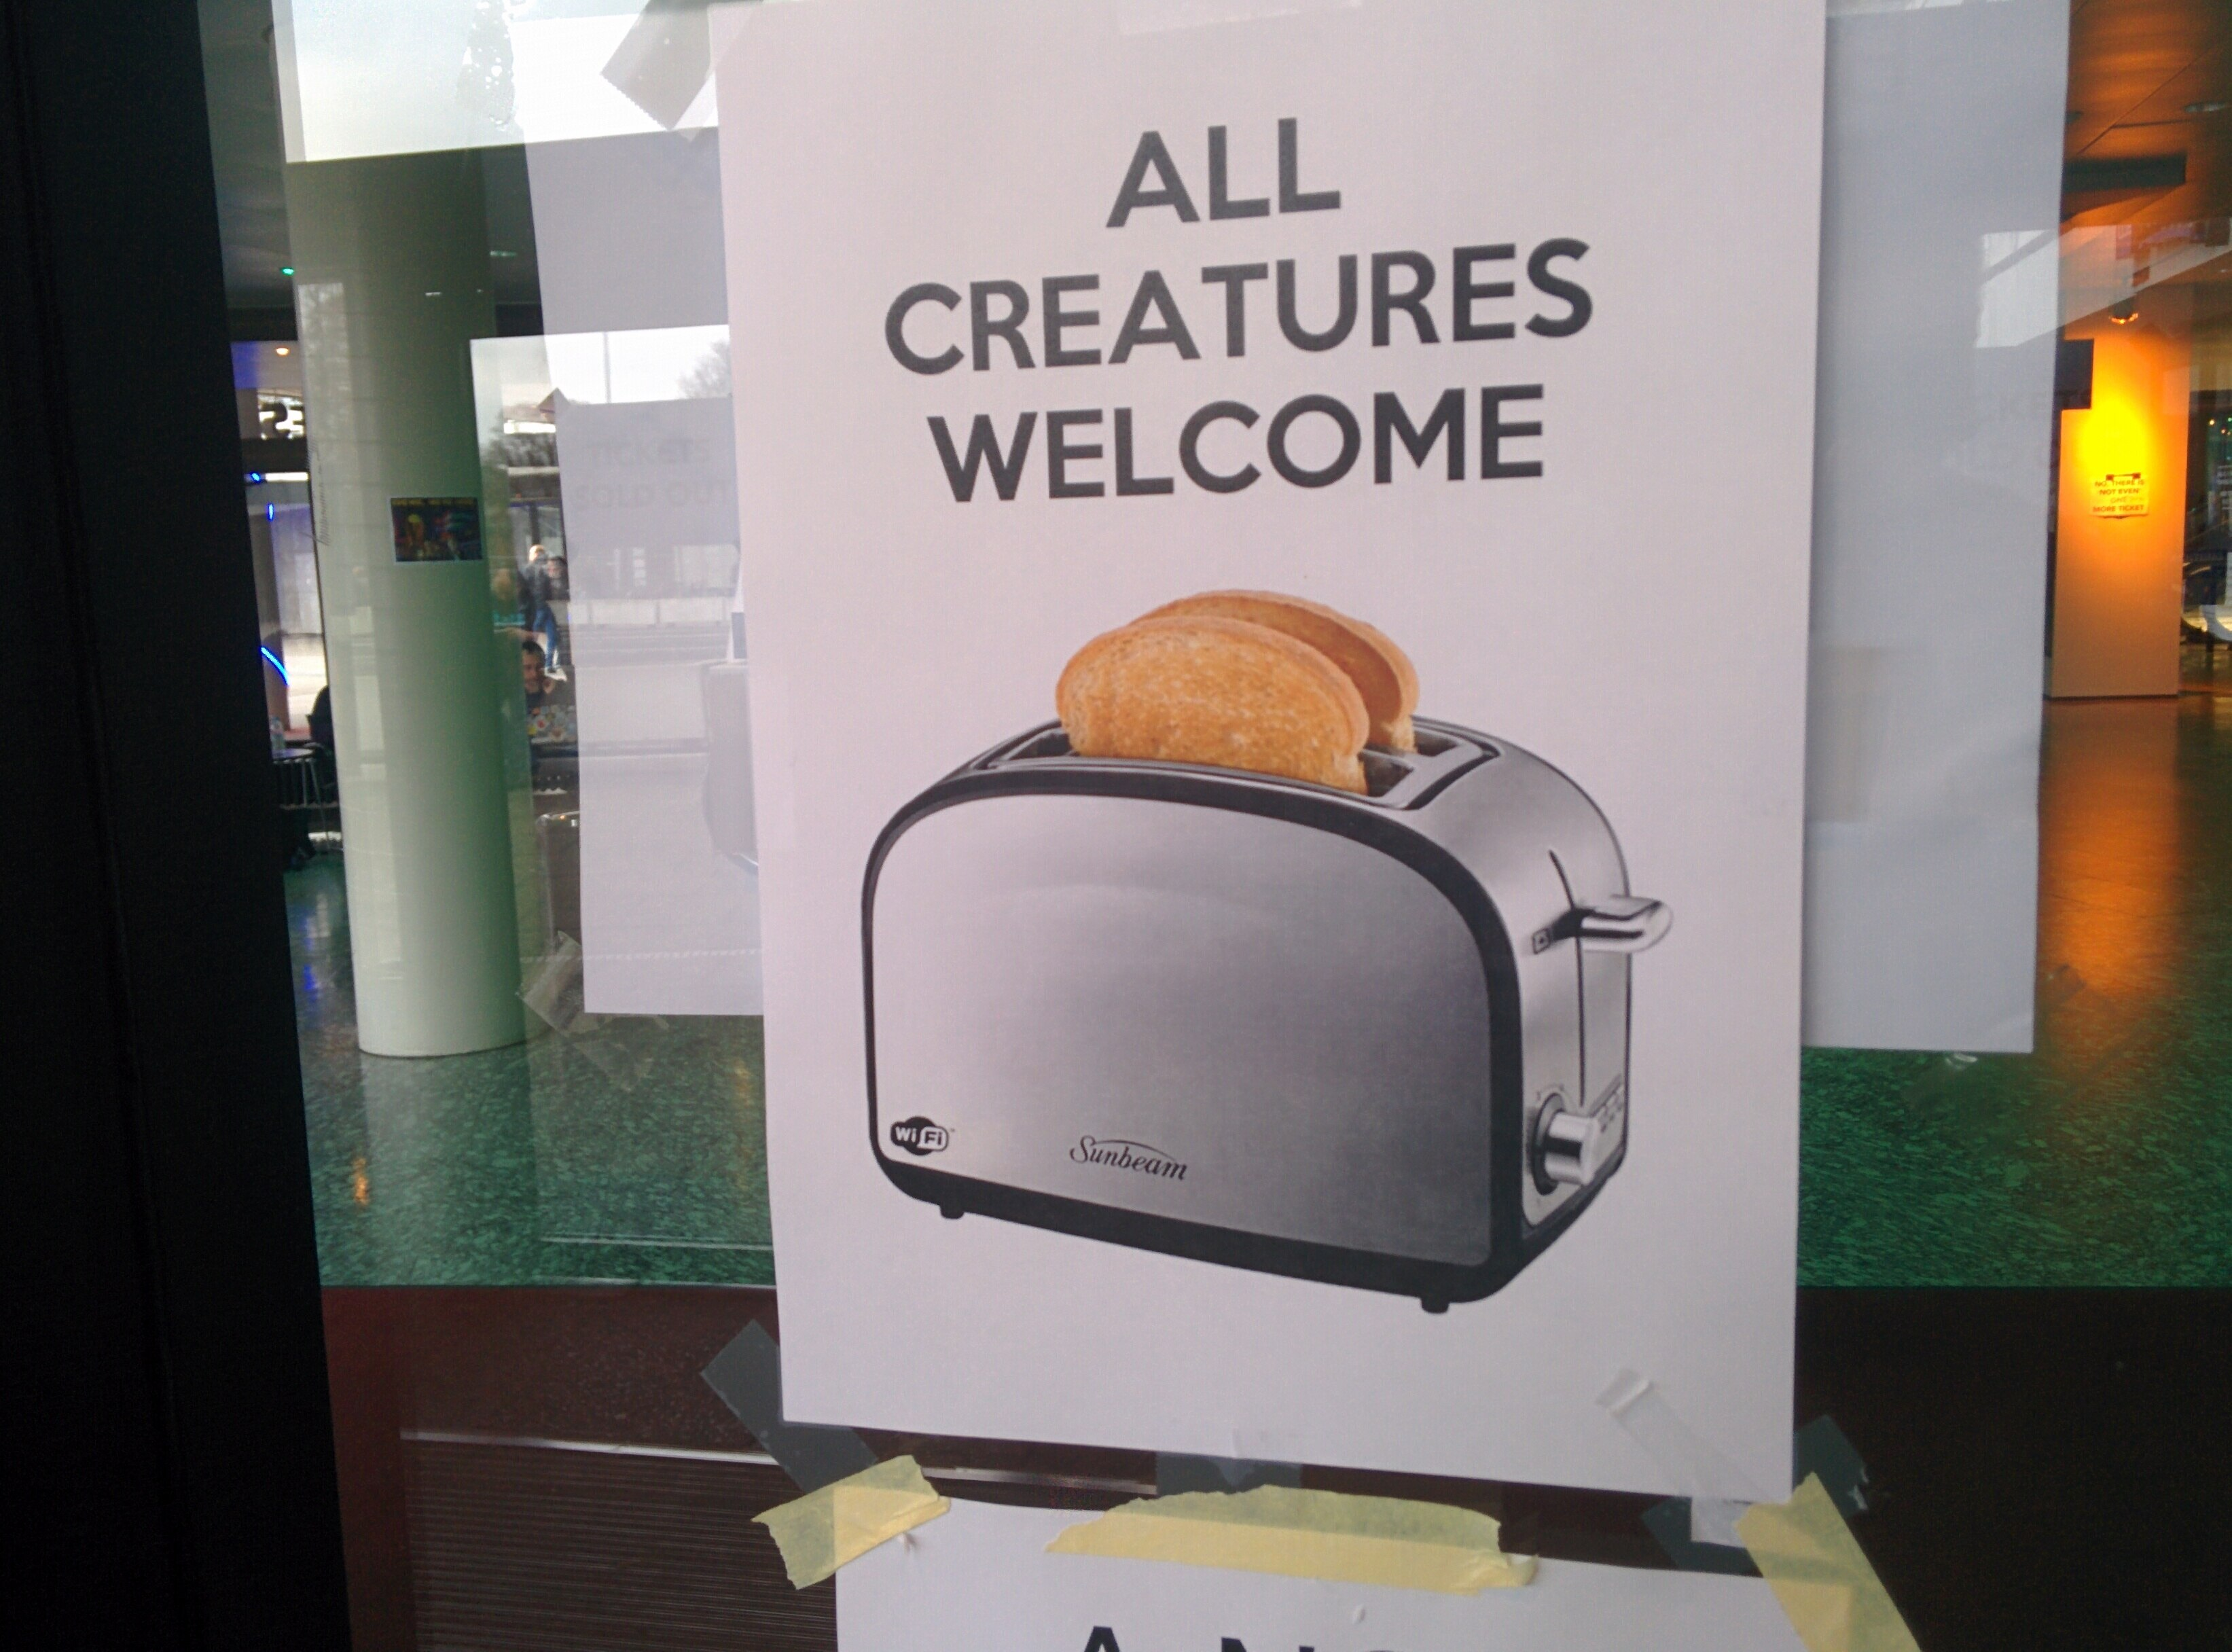 ALl toasters welcome